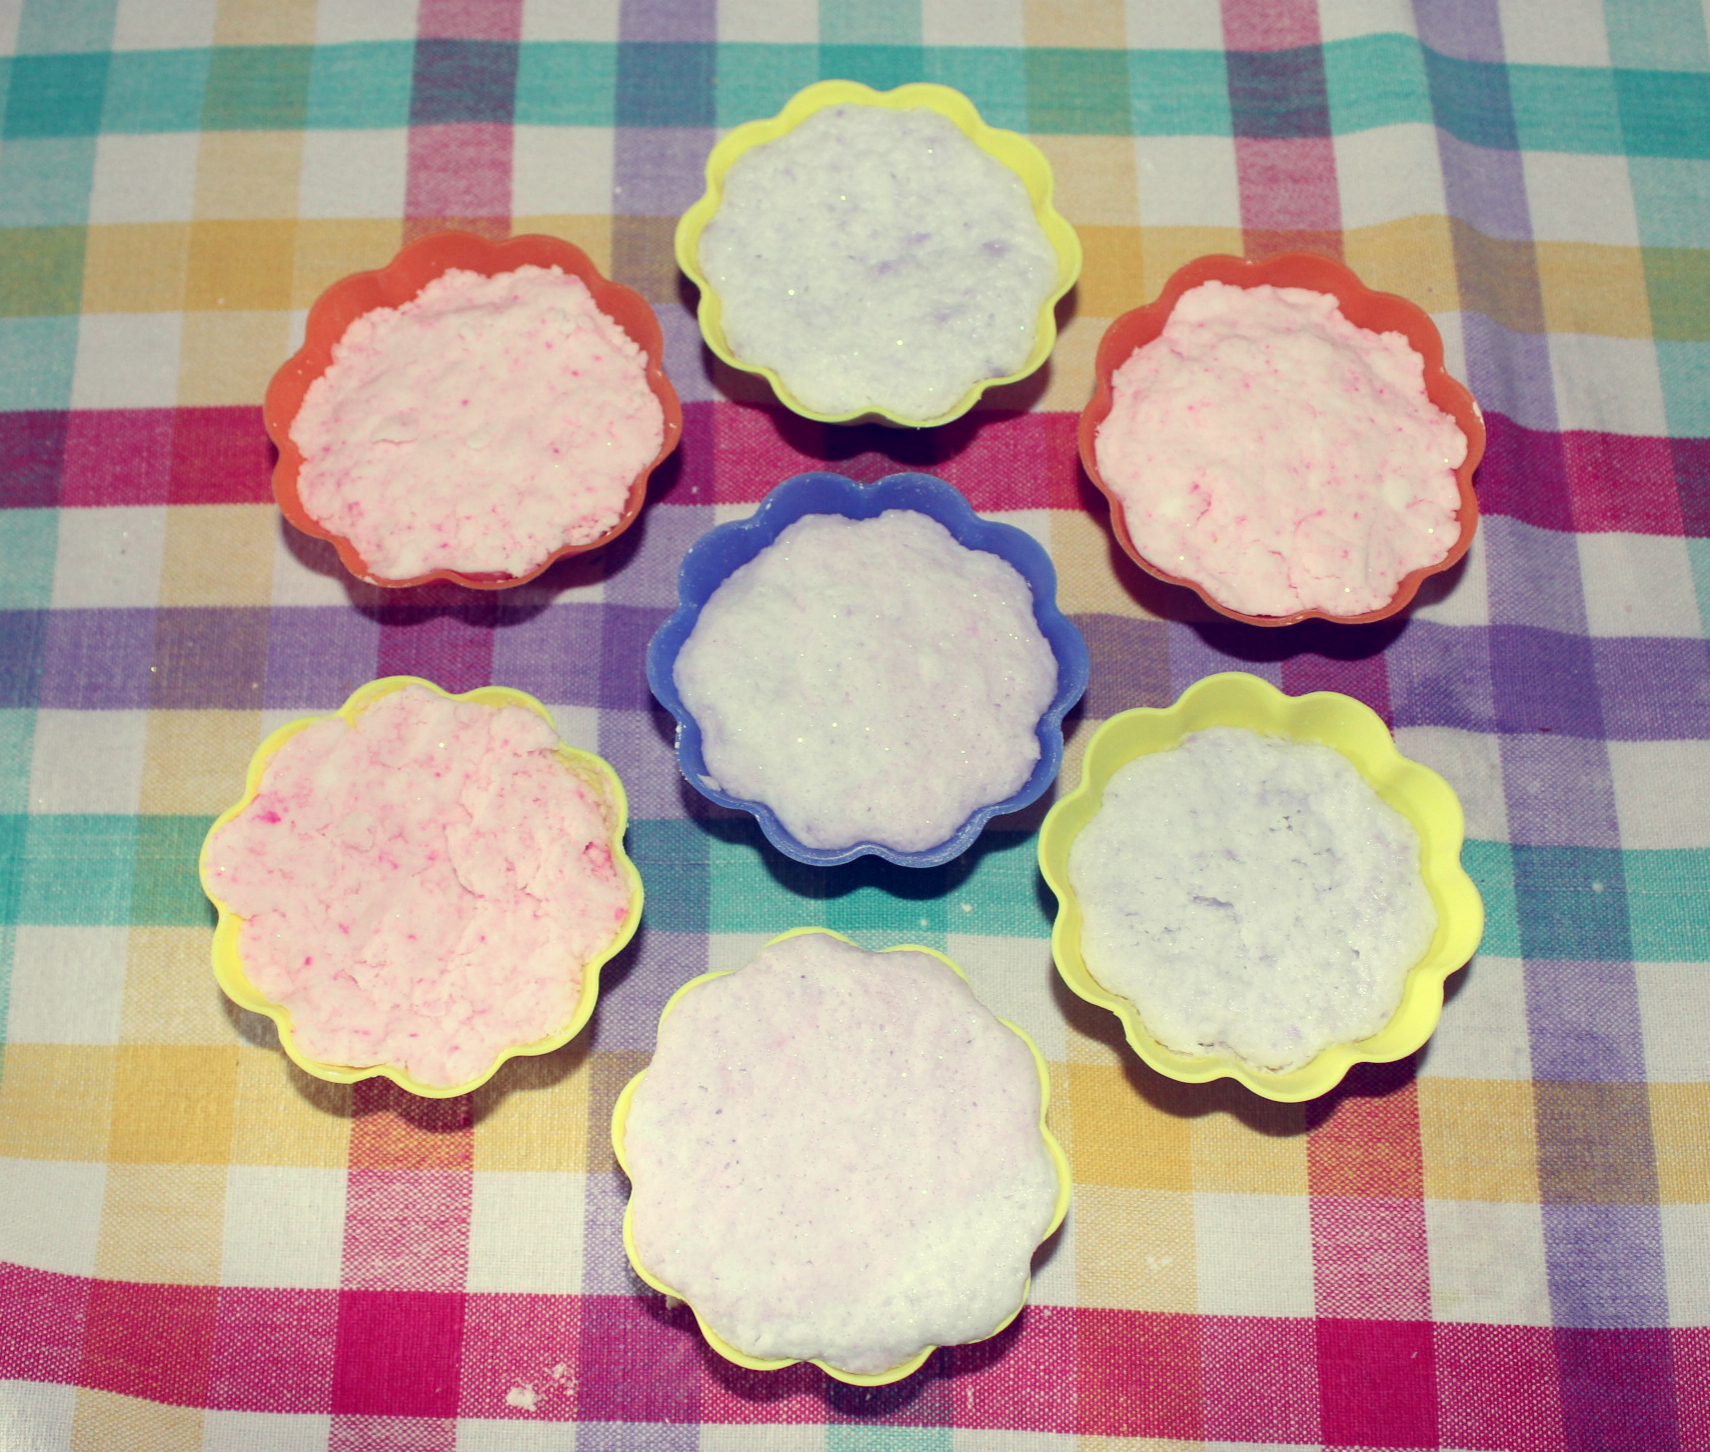 DIY Bath Bombs how to make your own bath fizzies on the pop shop america diy blog